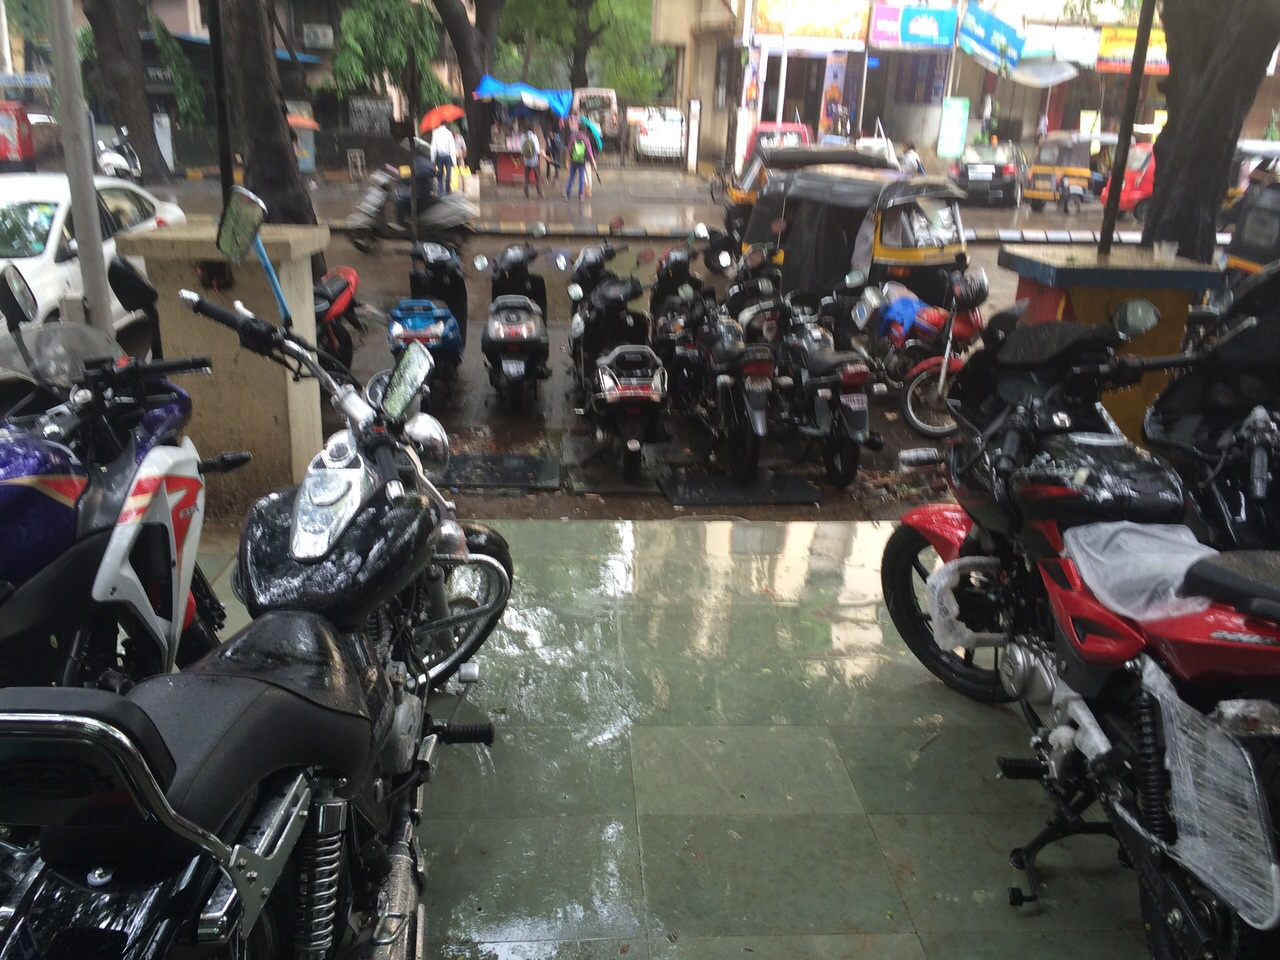 Used Two Wheeler Dealer in Mulund East, Mumbai